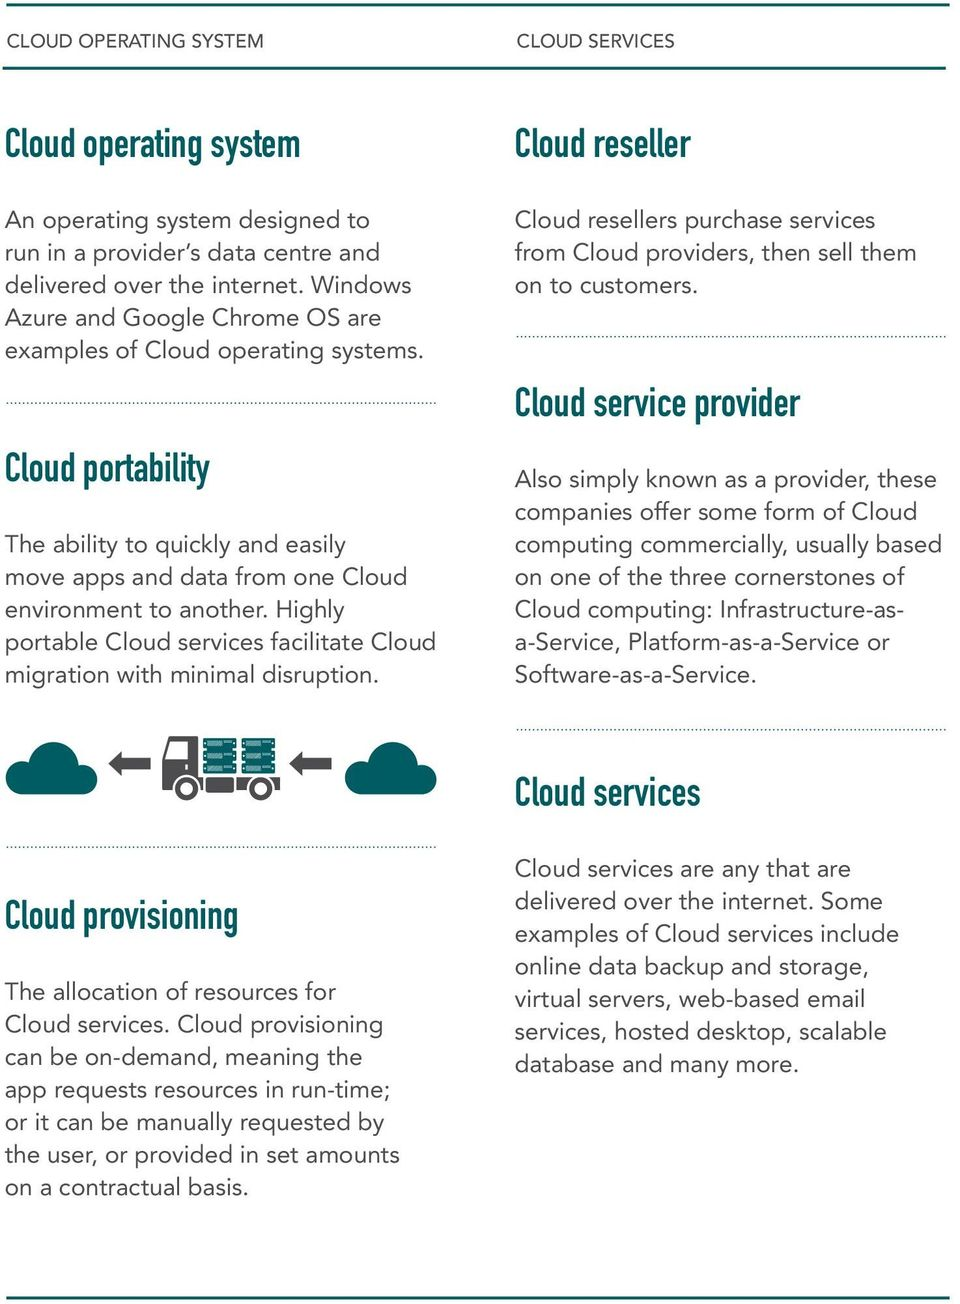 Highly portable Cloud services facilitate Cloud migration with minimal disruption. Cloud reseller Cloud resellers purchase services from Cloud providers, then sell them on to customers.